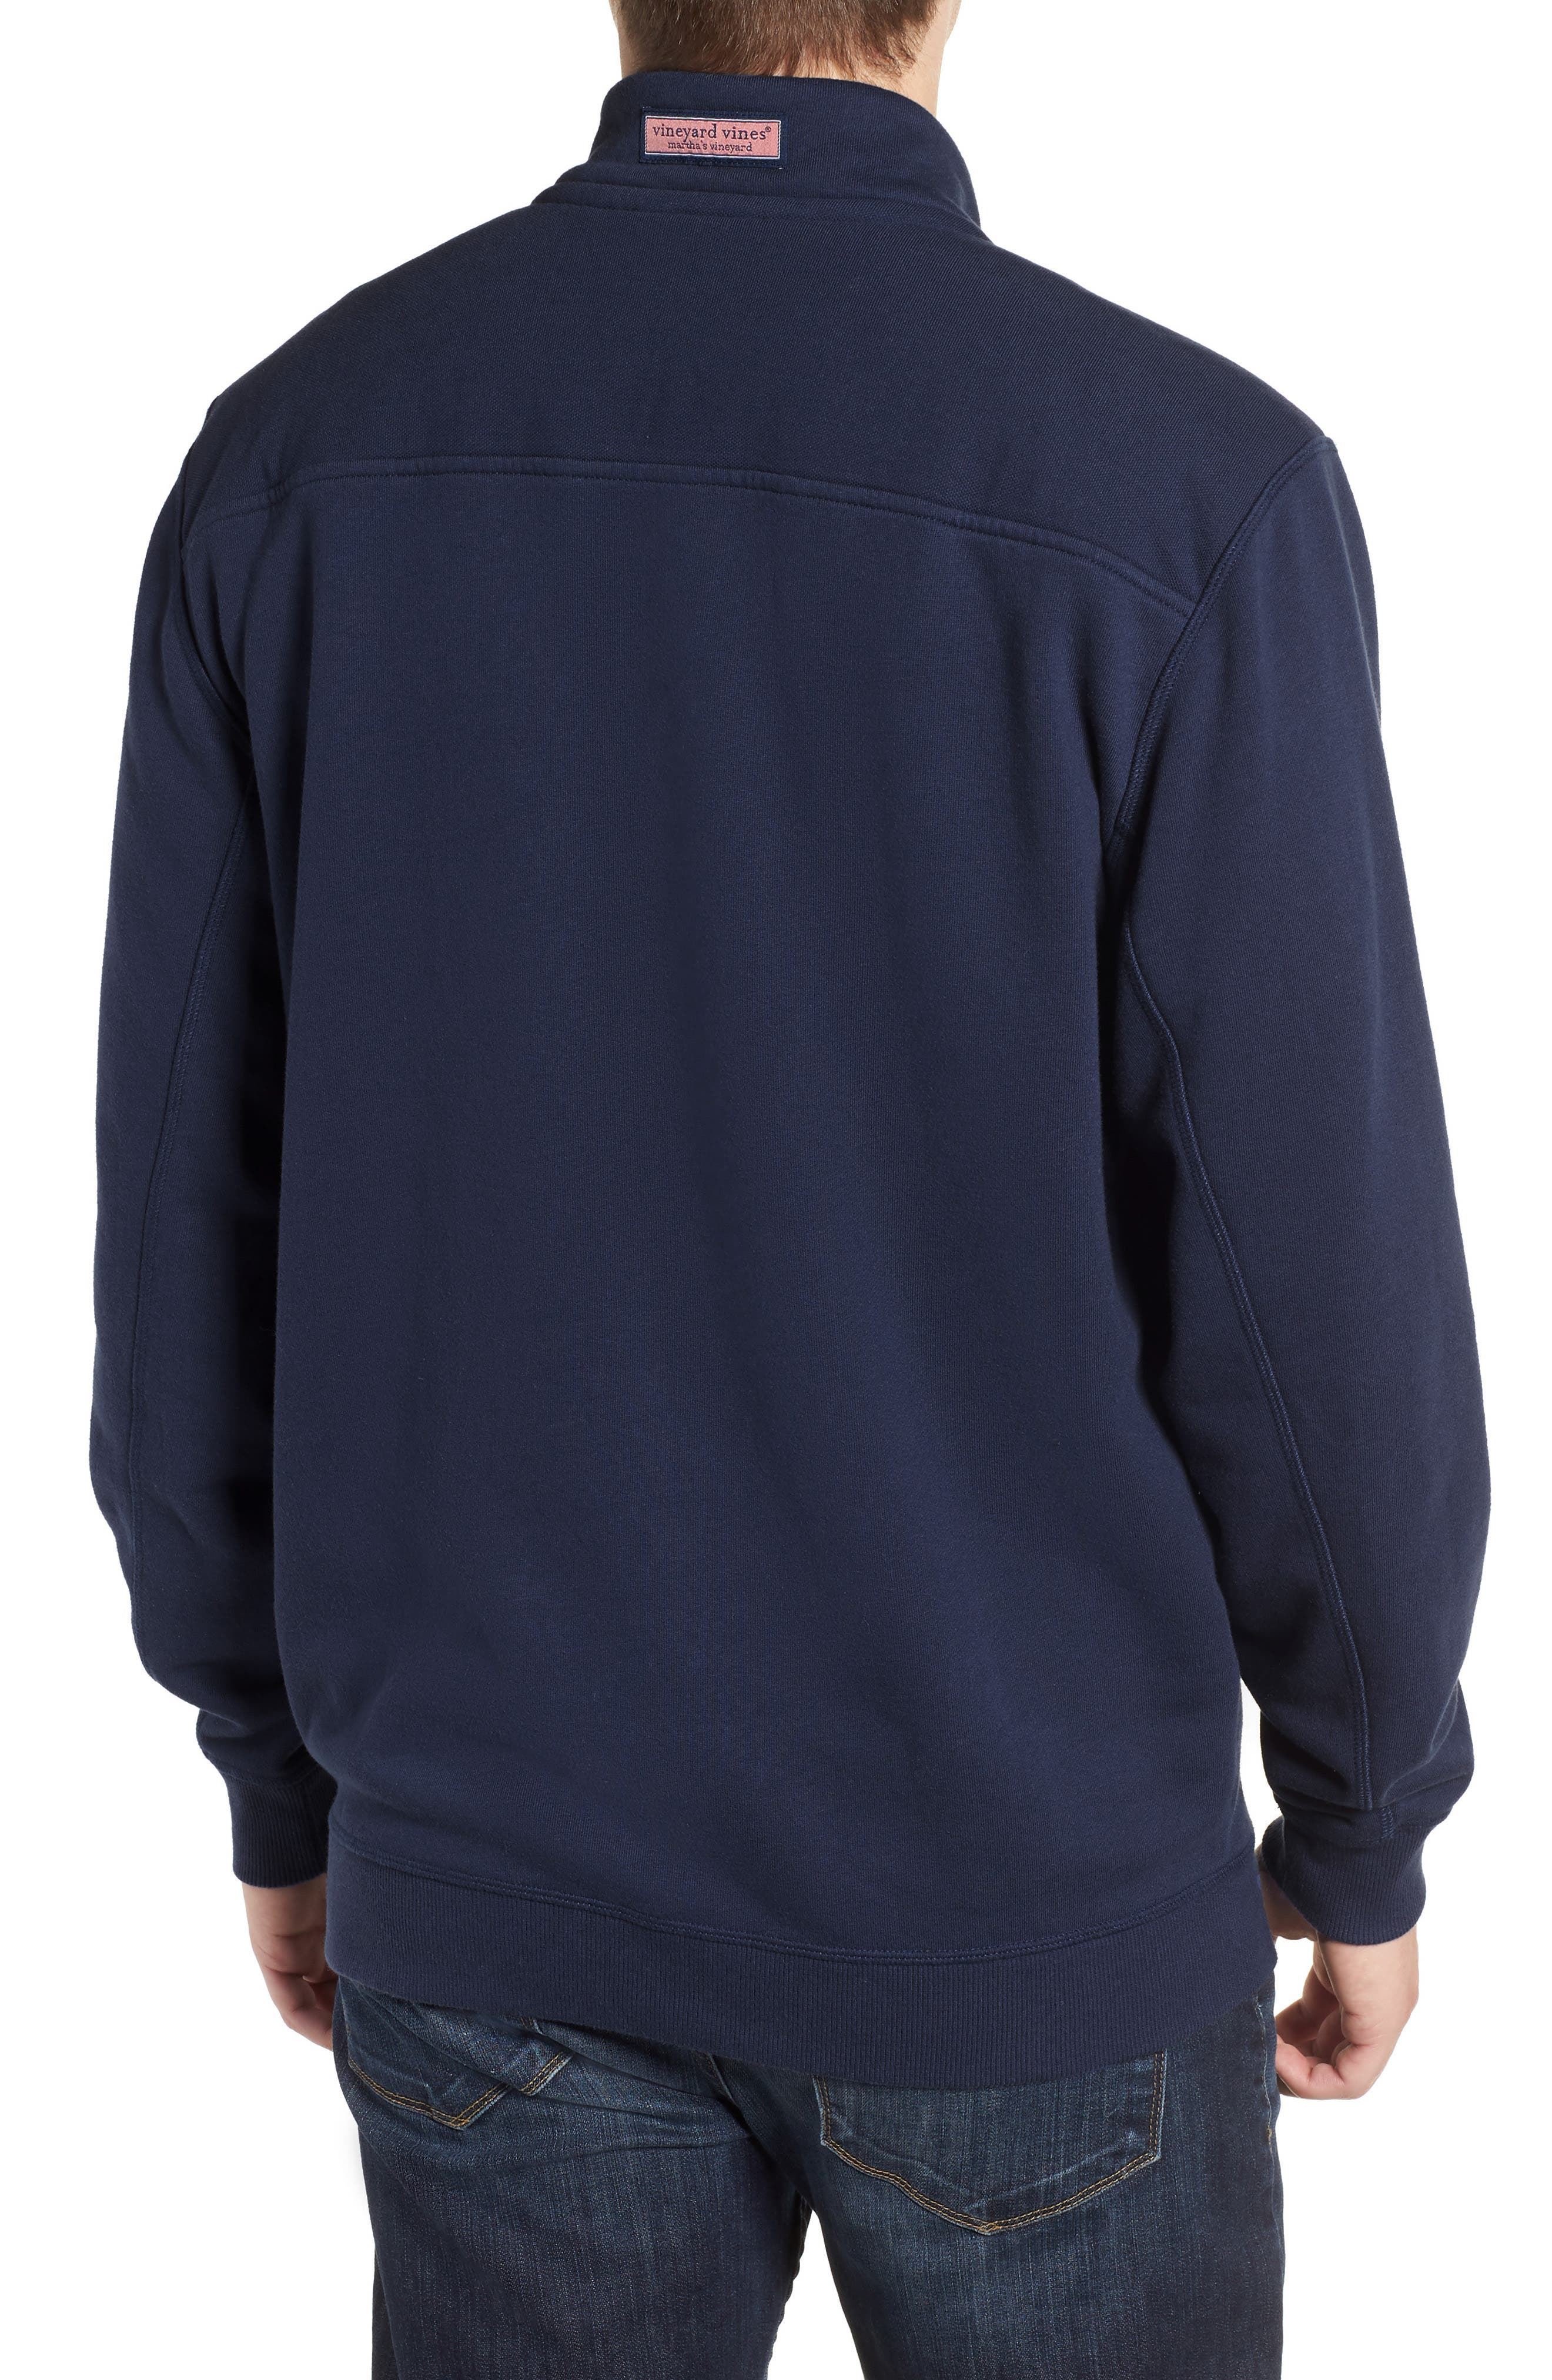 VINEYARD VINES, Collegiate Half Zip Pullover, Alternate thumbnail 2, color, VINEYARD NAVY